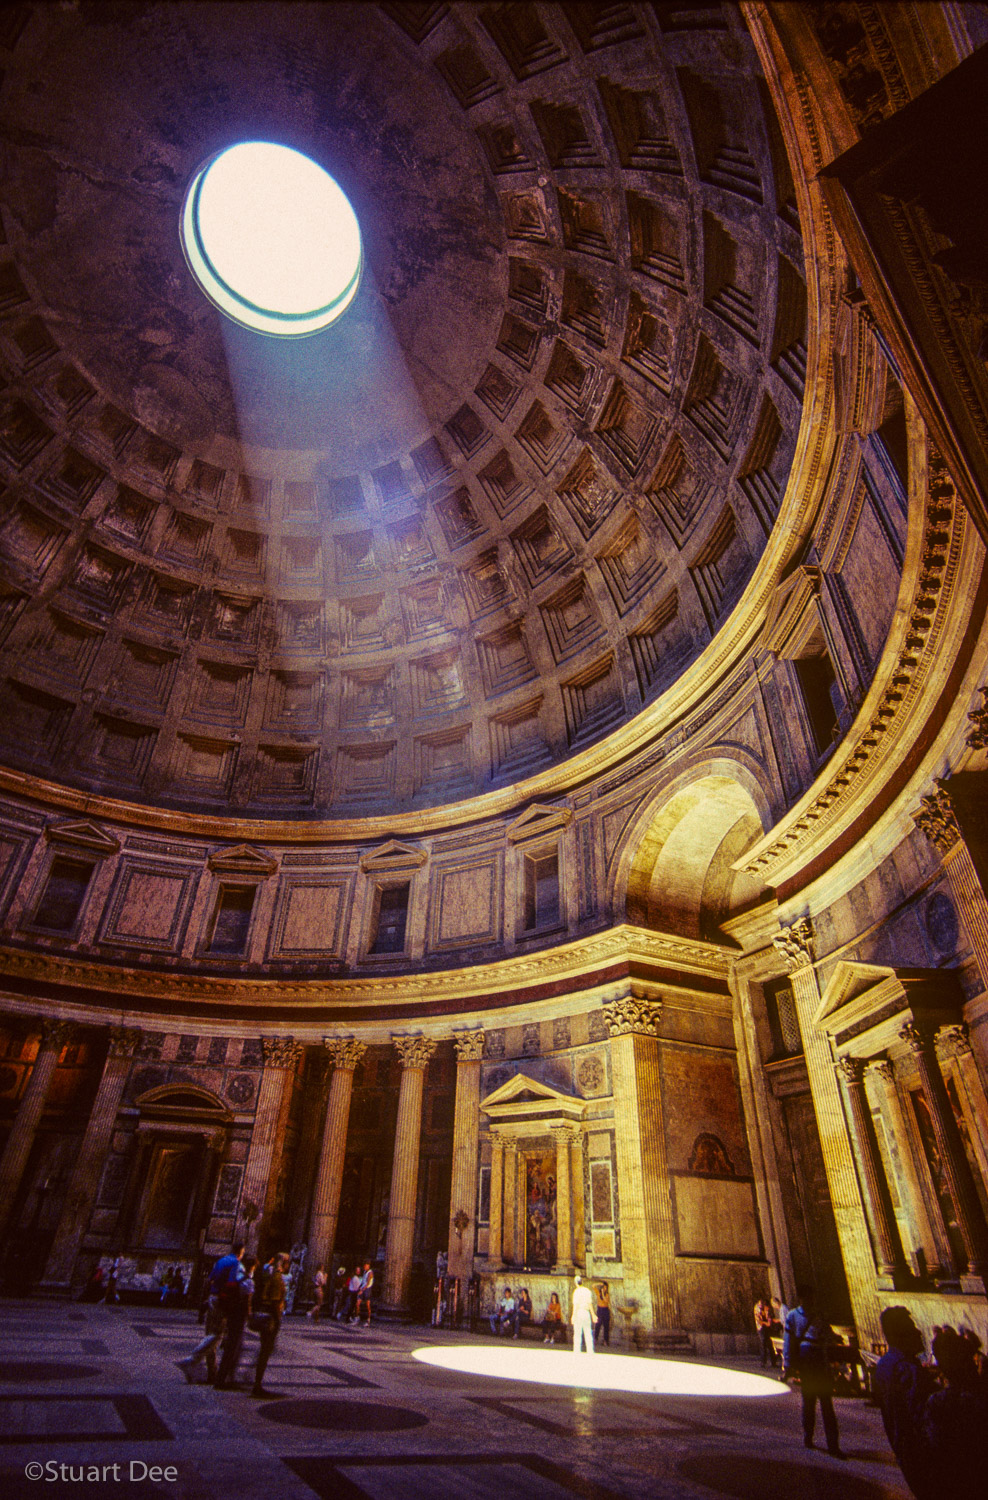 04-2005-099-08 Pantheon BASE scan w ice.jpg